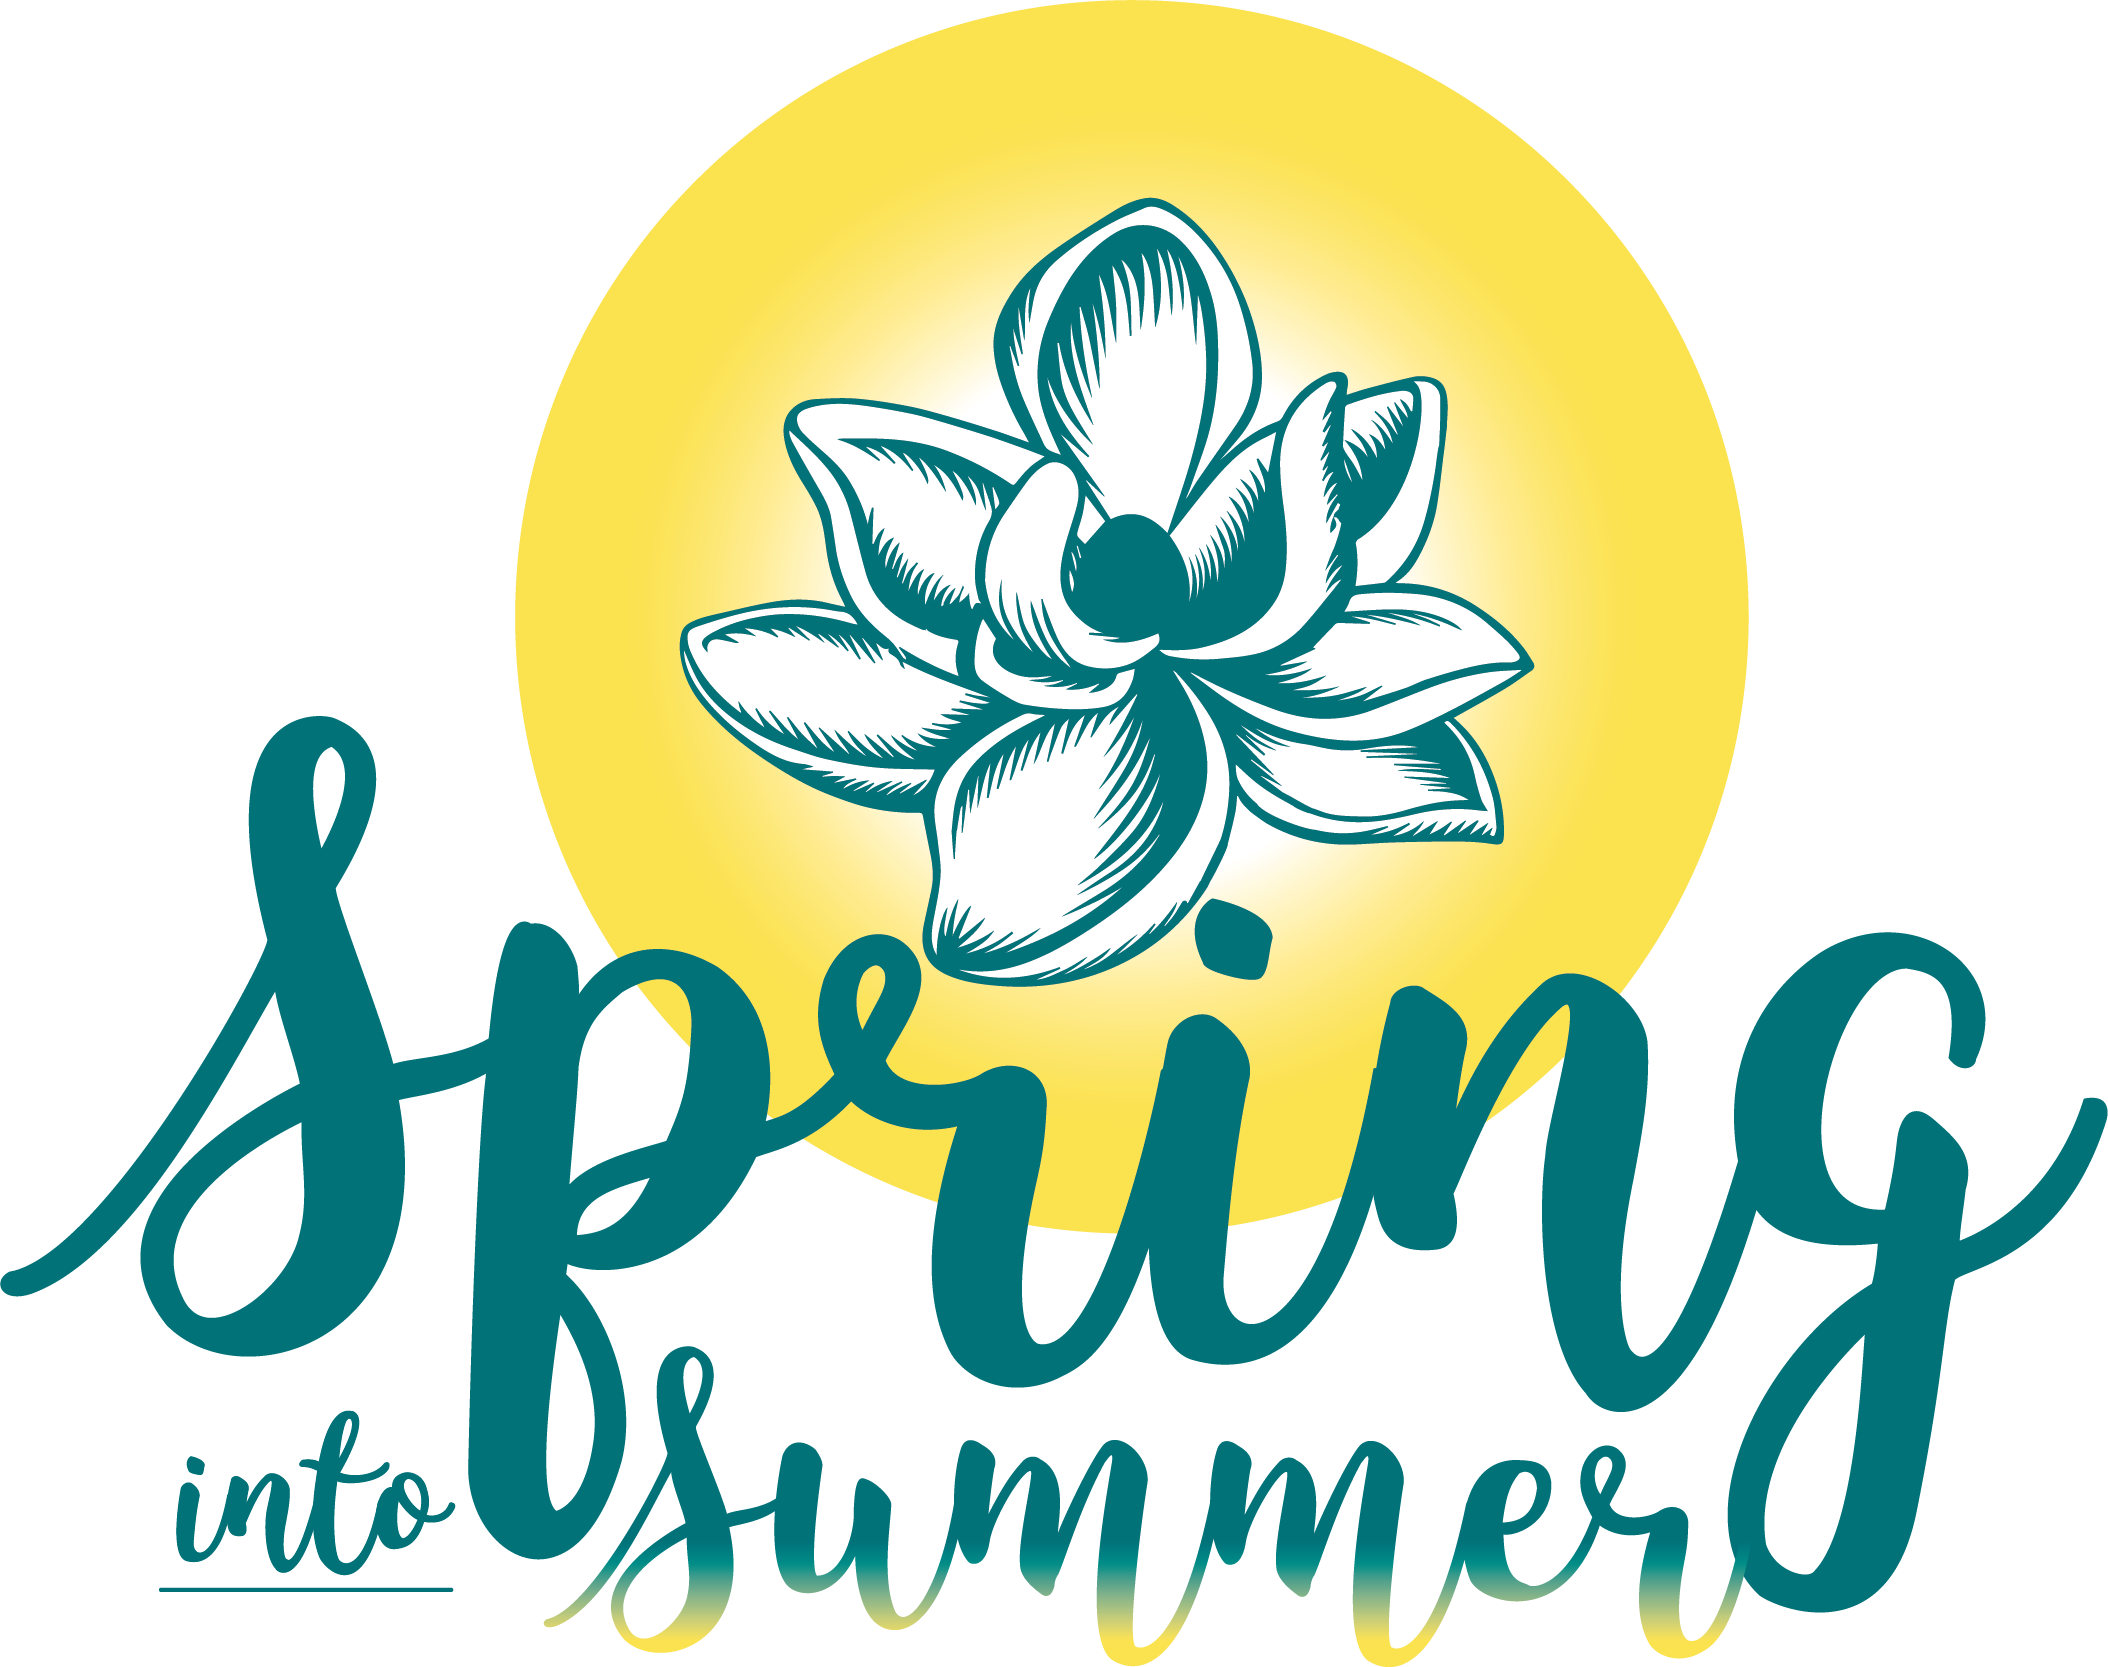 Into summer bluegrass care. Raffle clipart spring